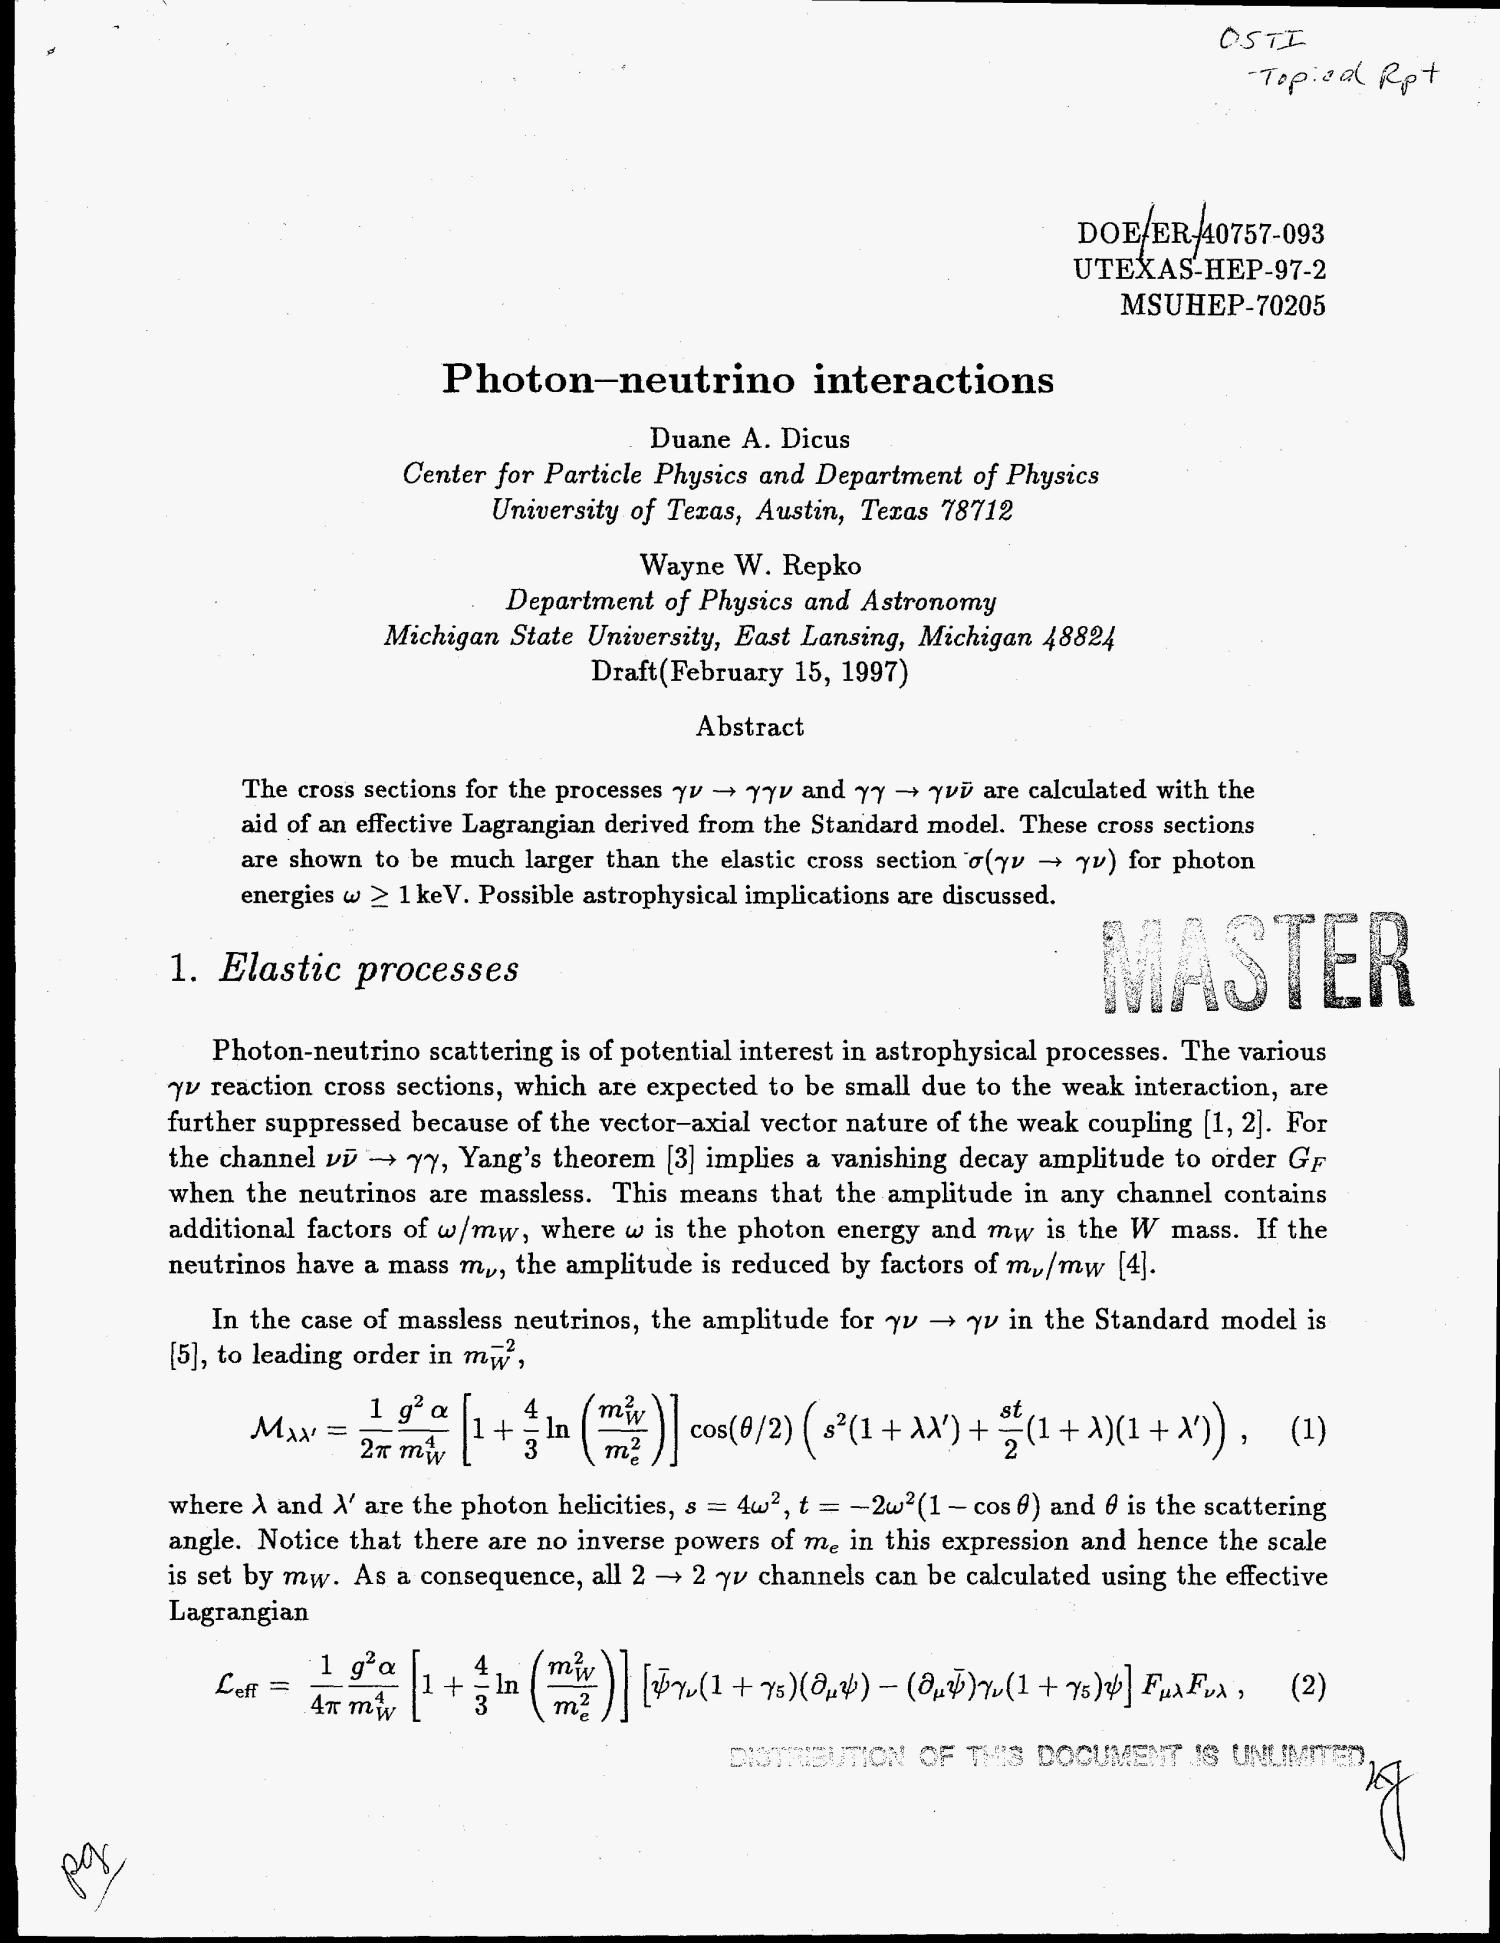 Photon-neutrino interactions                                                                                                      [Sequence #]: 1 of 7